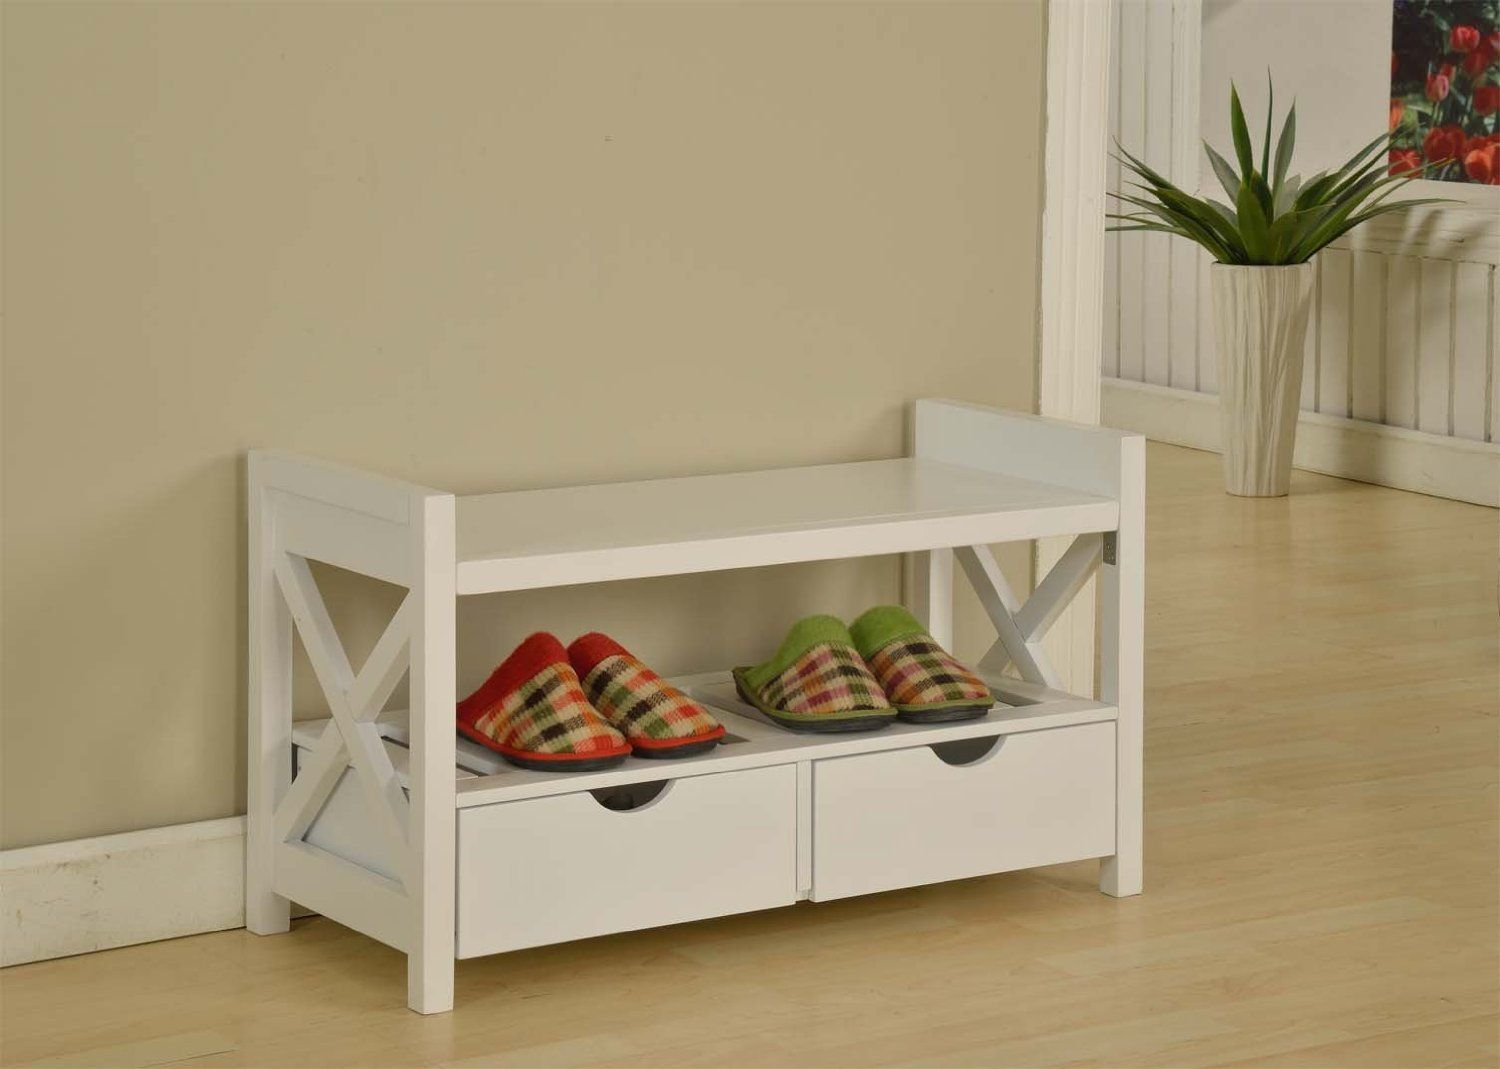 Bench Shoe Storage To Accommodate Shoe Collection Corner Bench